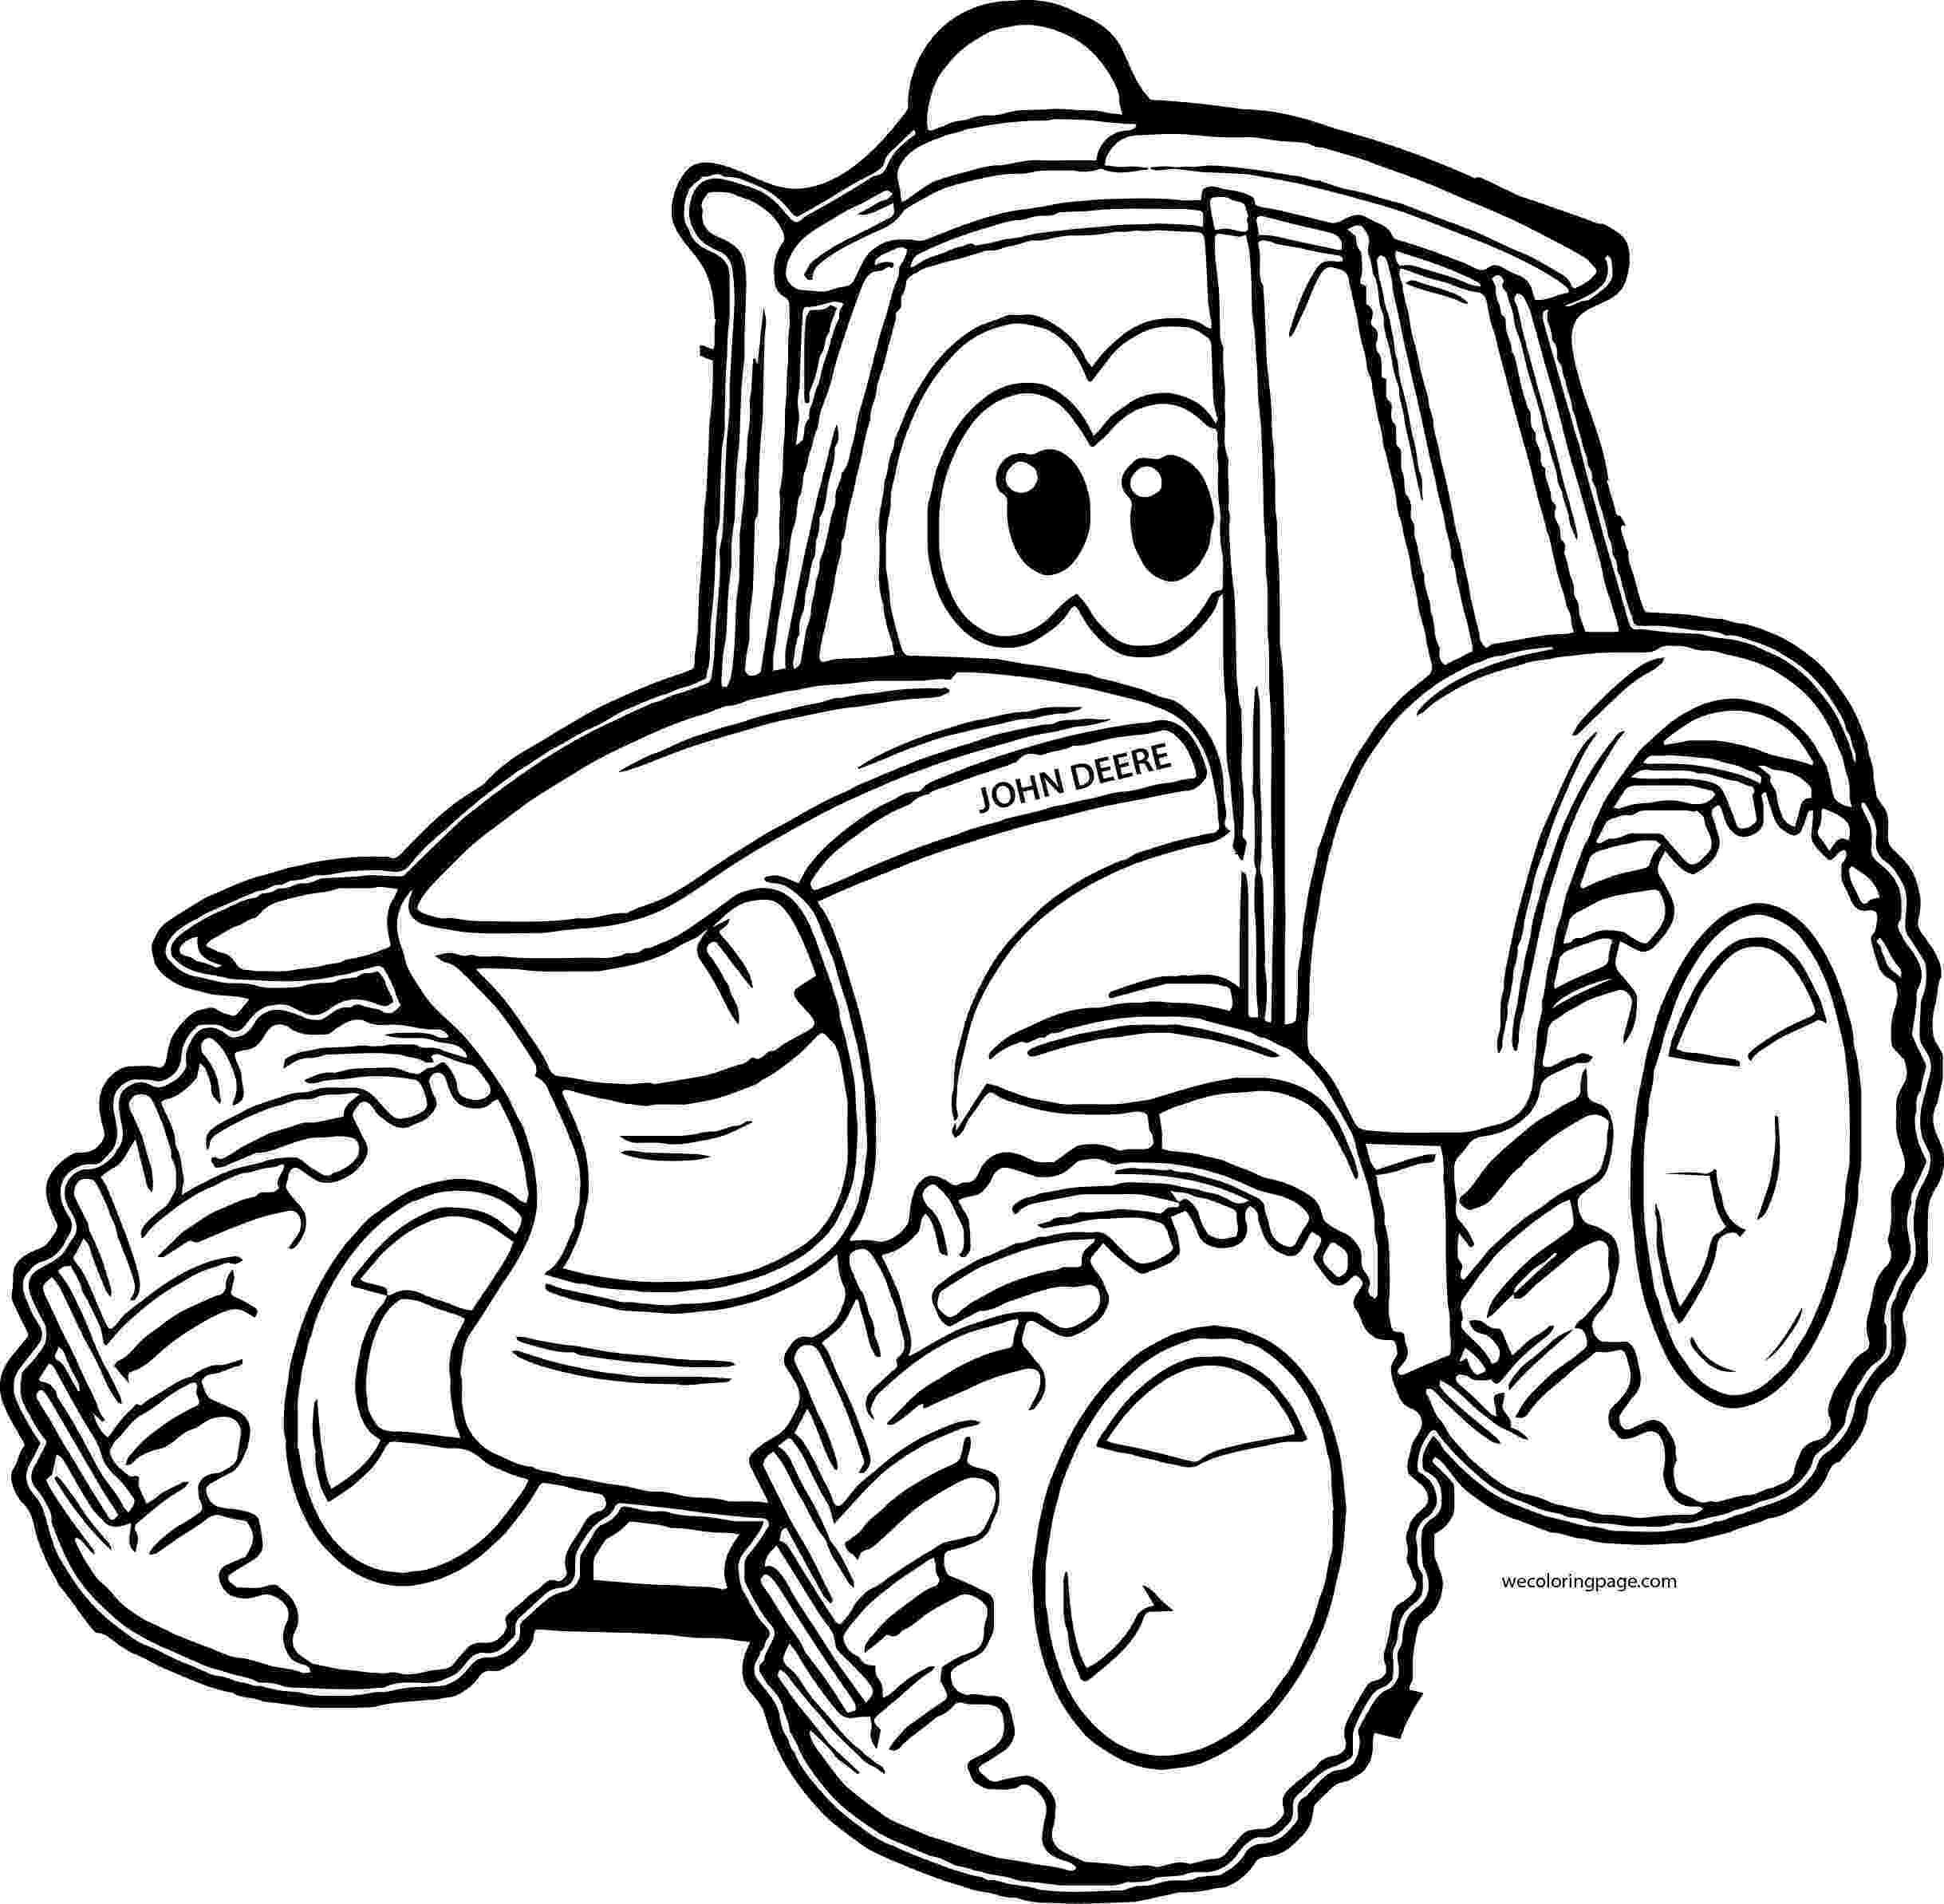 tractor coloring sheet john johnny deere tractor coloring pages wecoloringpagecom sheet coloring tractor